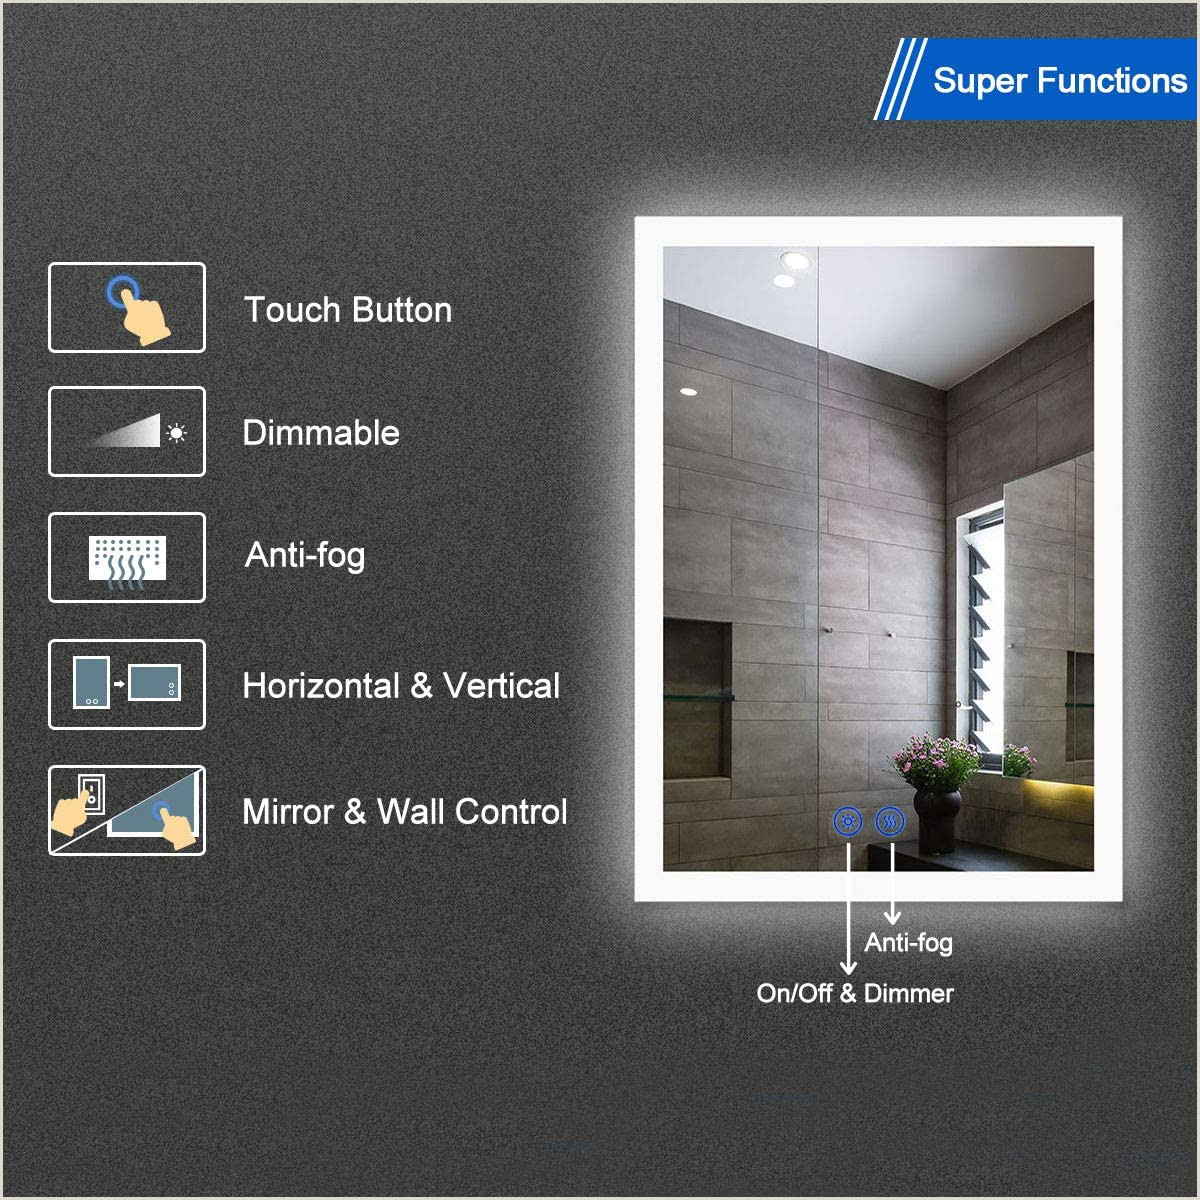 Adding Unique Touches To Business Cards Decoraport Dimmable Led Wall Mounted Mirror With Antifog Lighted Vanity Bathroom Mirror With Touch Button 20×28 Inch Vertical & Horizontal Mount